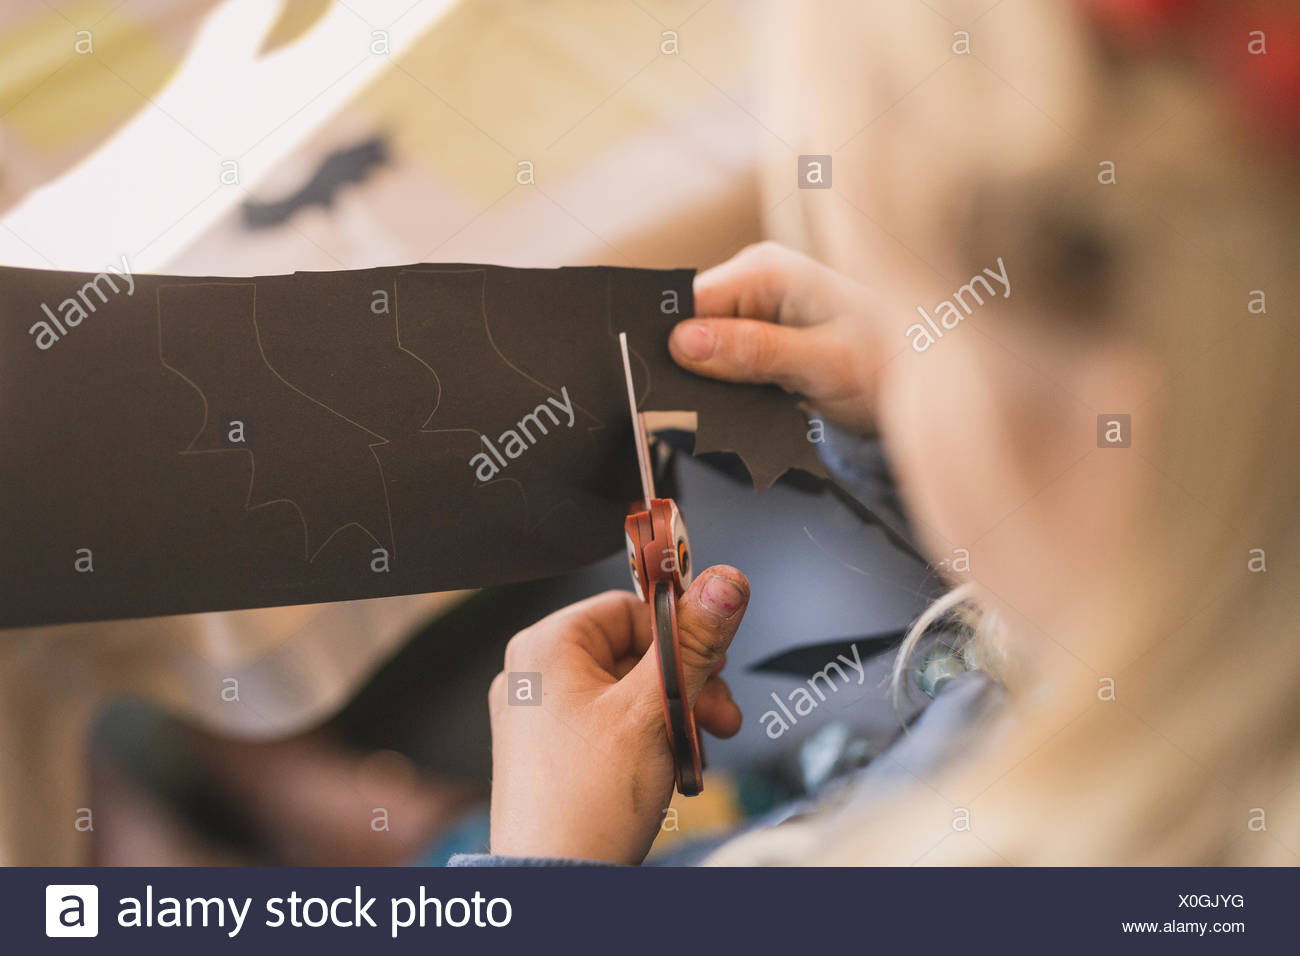 Girl cutting paper with owl-shape scissors - Stock Image